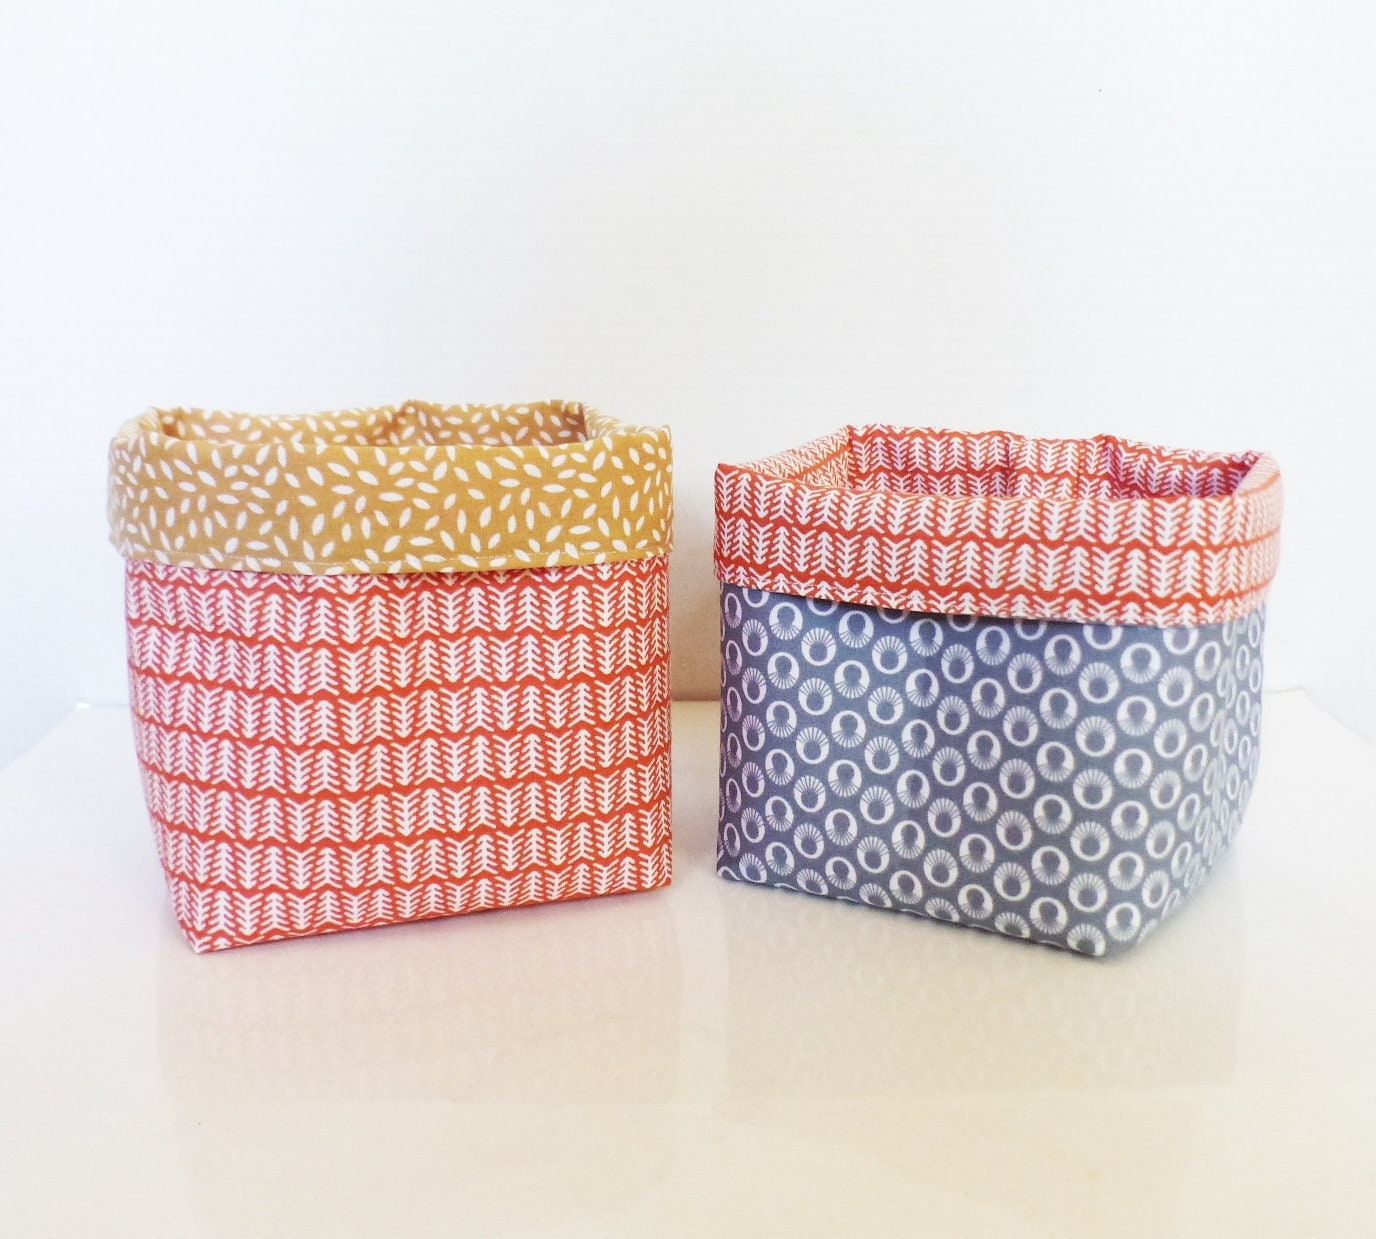 Exceptionnel 2 Small Decorative Storage Baskets / Plant Pot   13 Cm X 12 Cm   Fabric  Grey / Mustard / Coral   Japanese Fabric   Pouch   Organizer